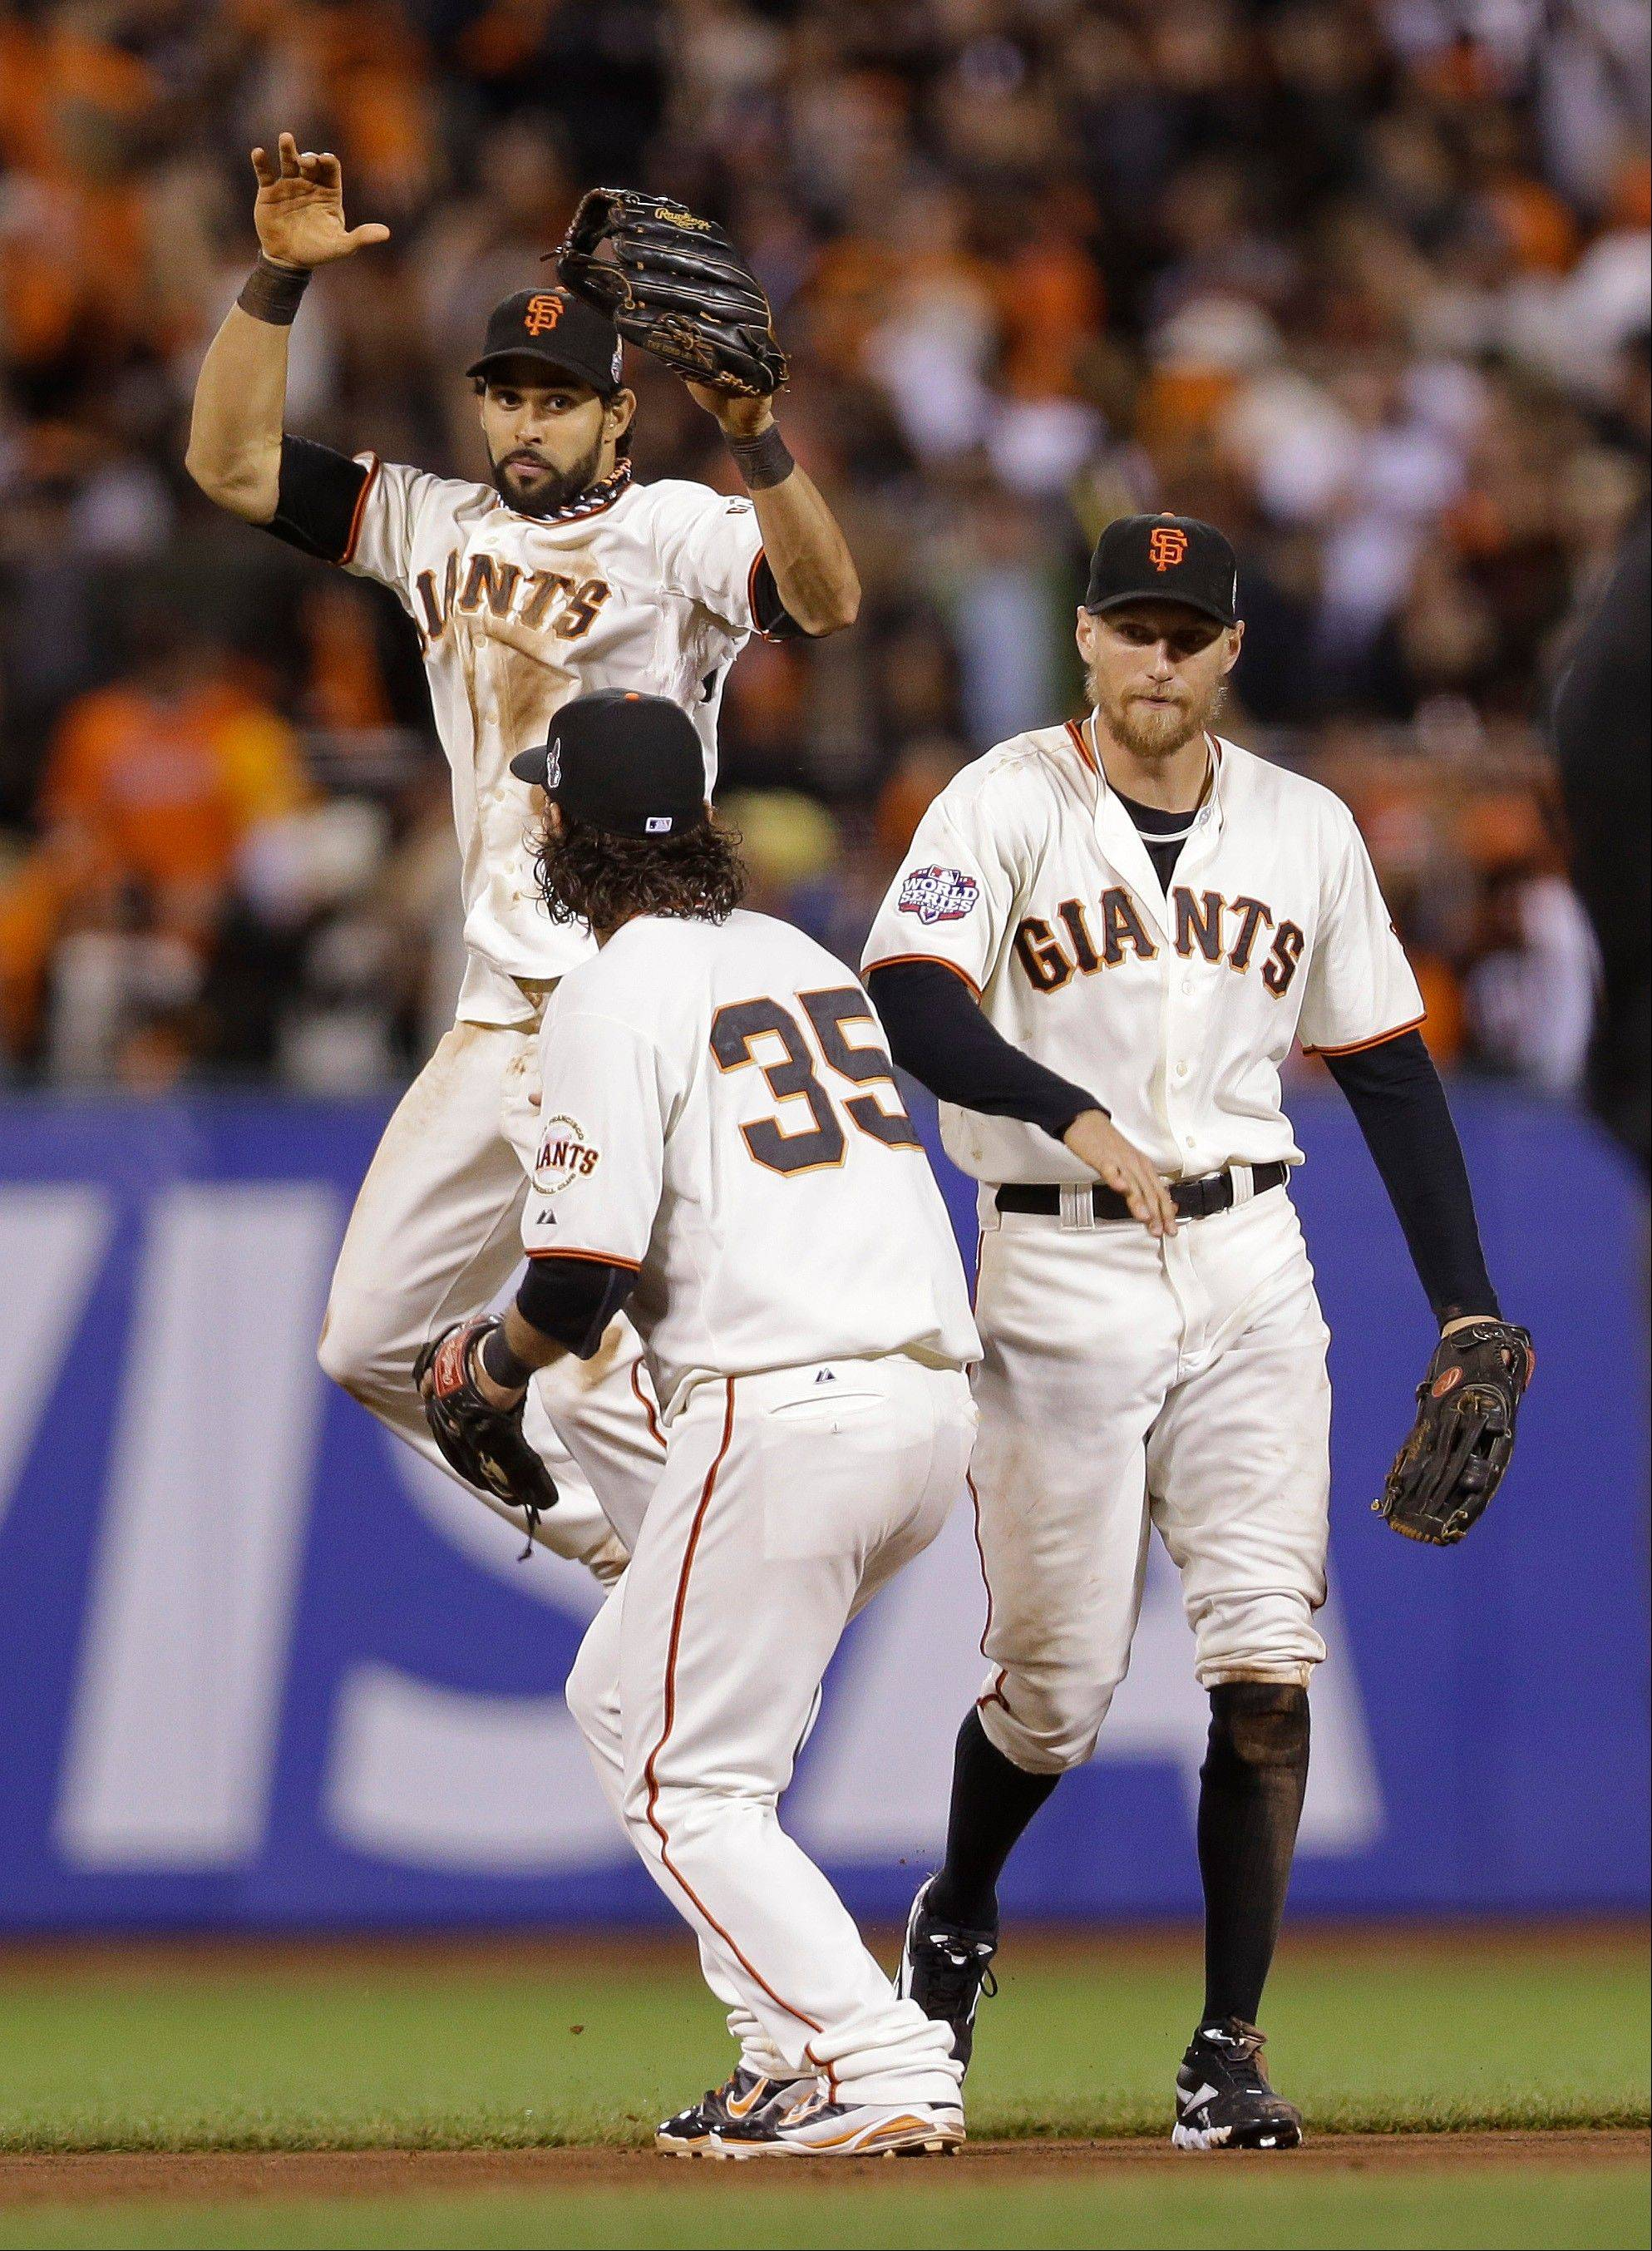 San Francisco Giants' Angel Pagan, Brandon Crawford (35) and Hunter Pence, right, celebrate after the Giants defeated the Detroit Tigers, 2-0, in Game 2 of baseball's World Series Thursday, Oct. 25, 2012, in San Francisco. (AP Photo/Marcio Jose Sanchez)